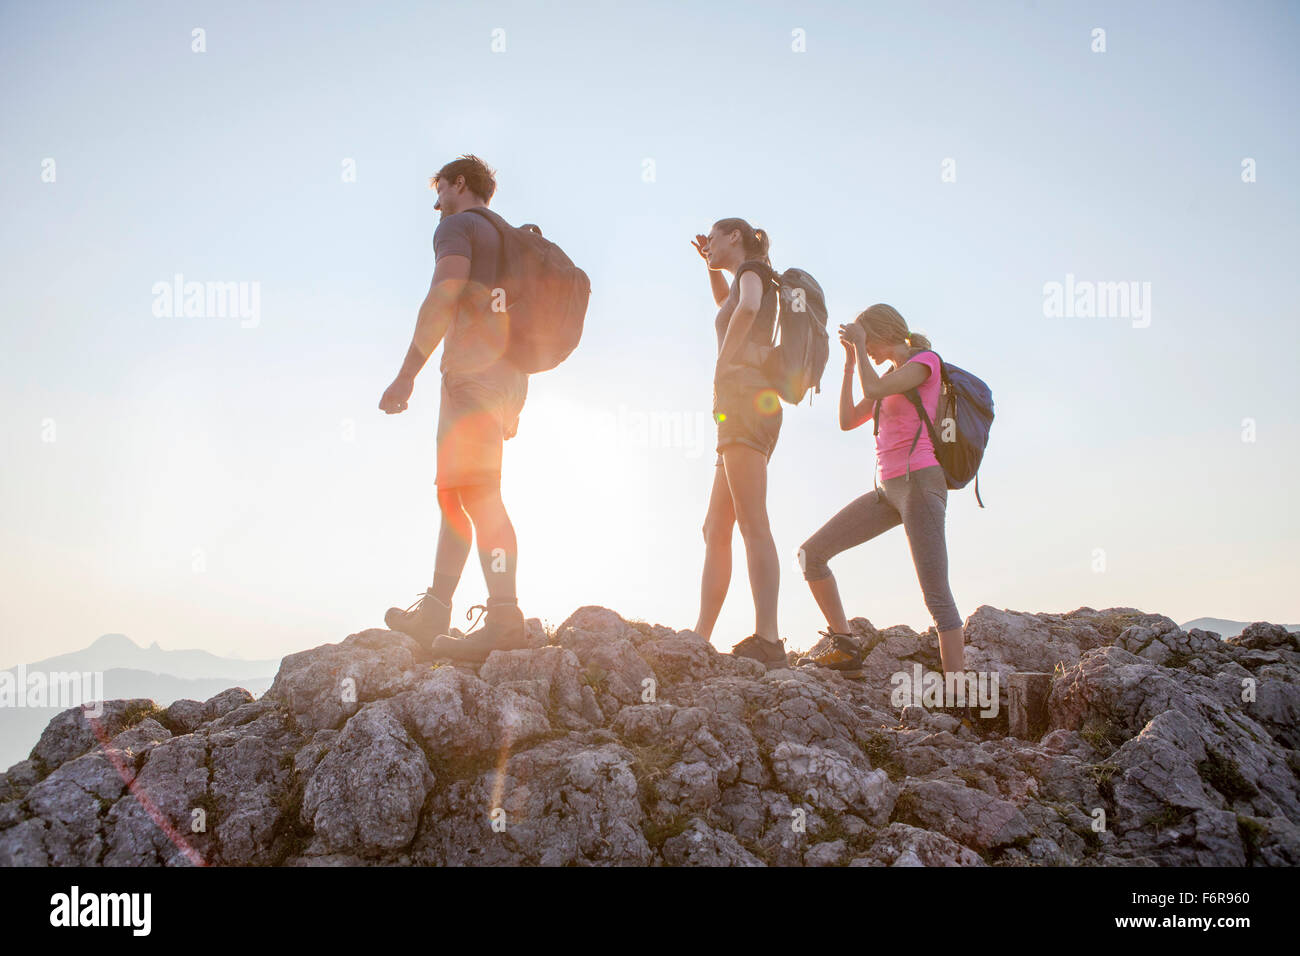 Group of friends overlooking mountain landscape - Stock Image